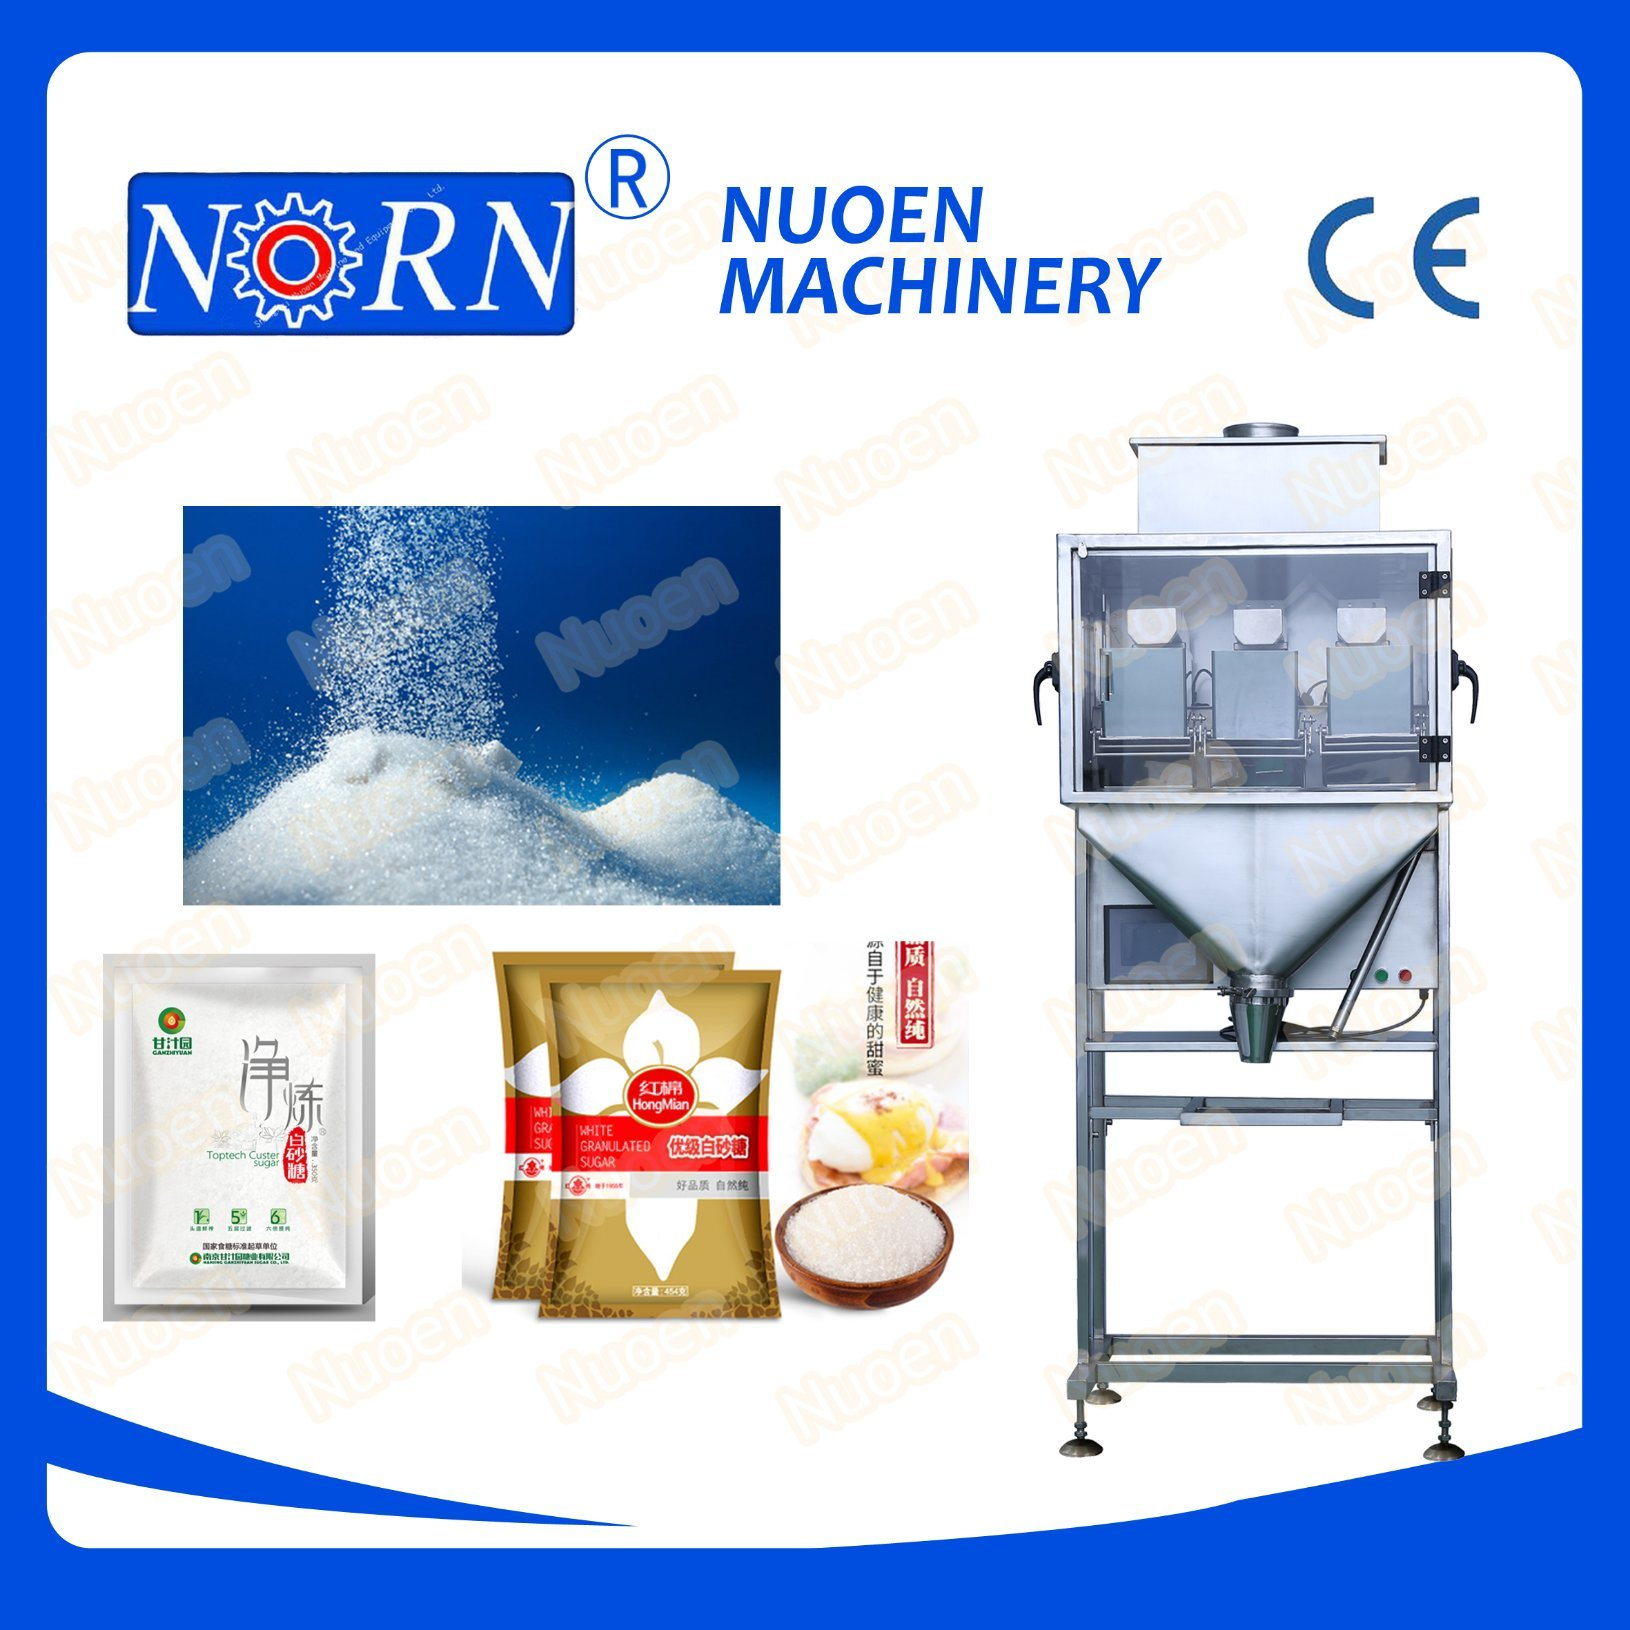 Nuoen Three Stations Metering Weighing Machine for Particles/Powder